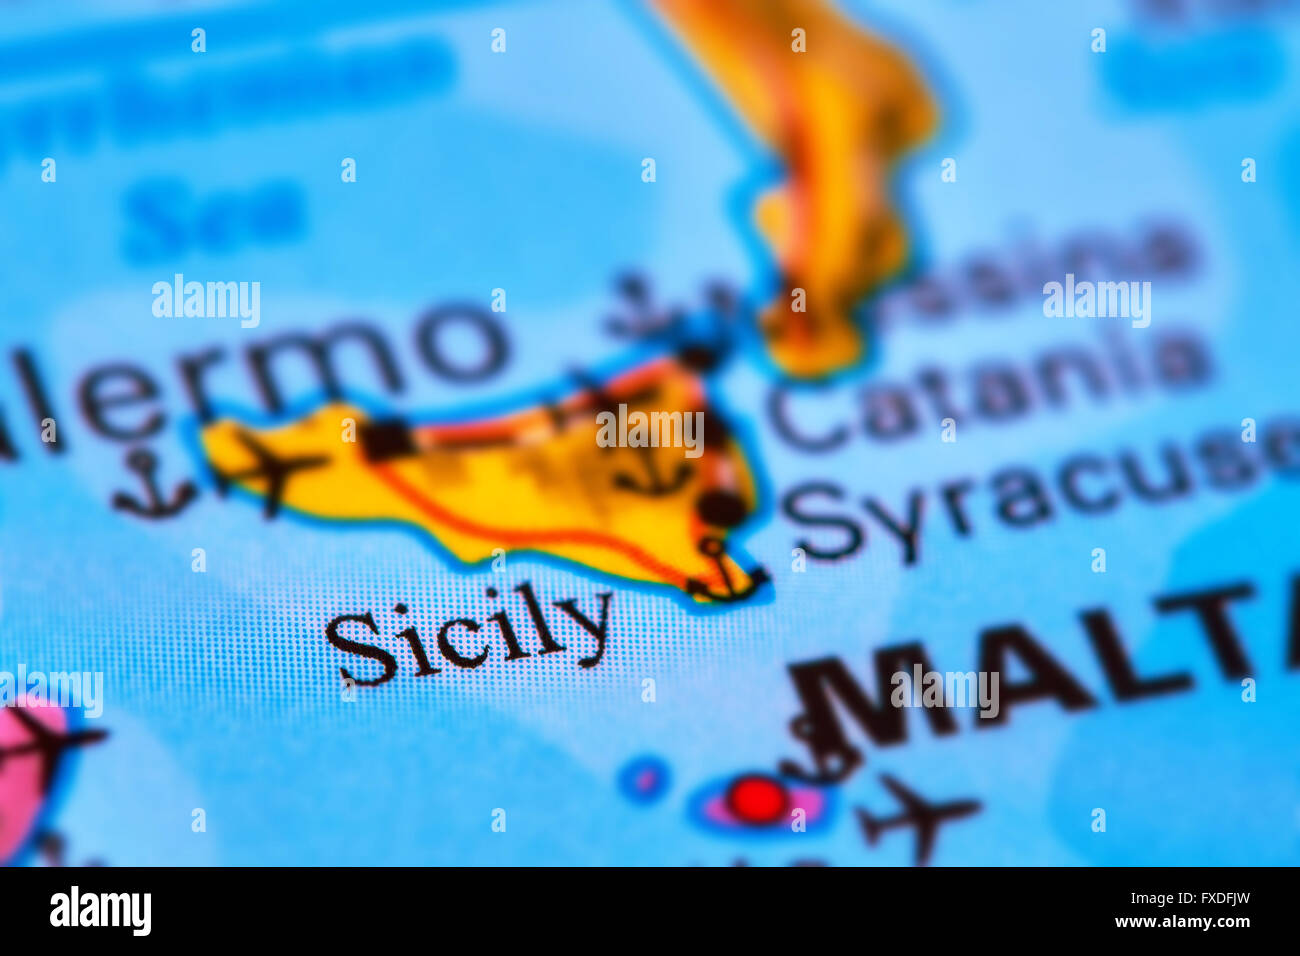 Sicily island in italy on the world map stock photo 102330561 alamy sicily island in italy on the world map gumiabroncs Image collections